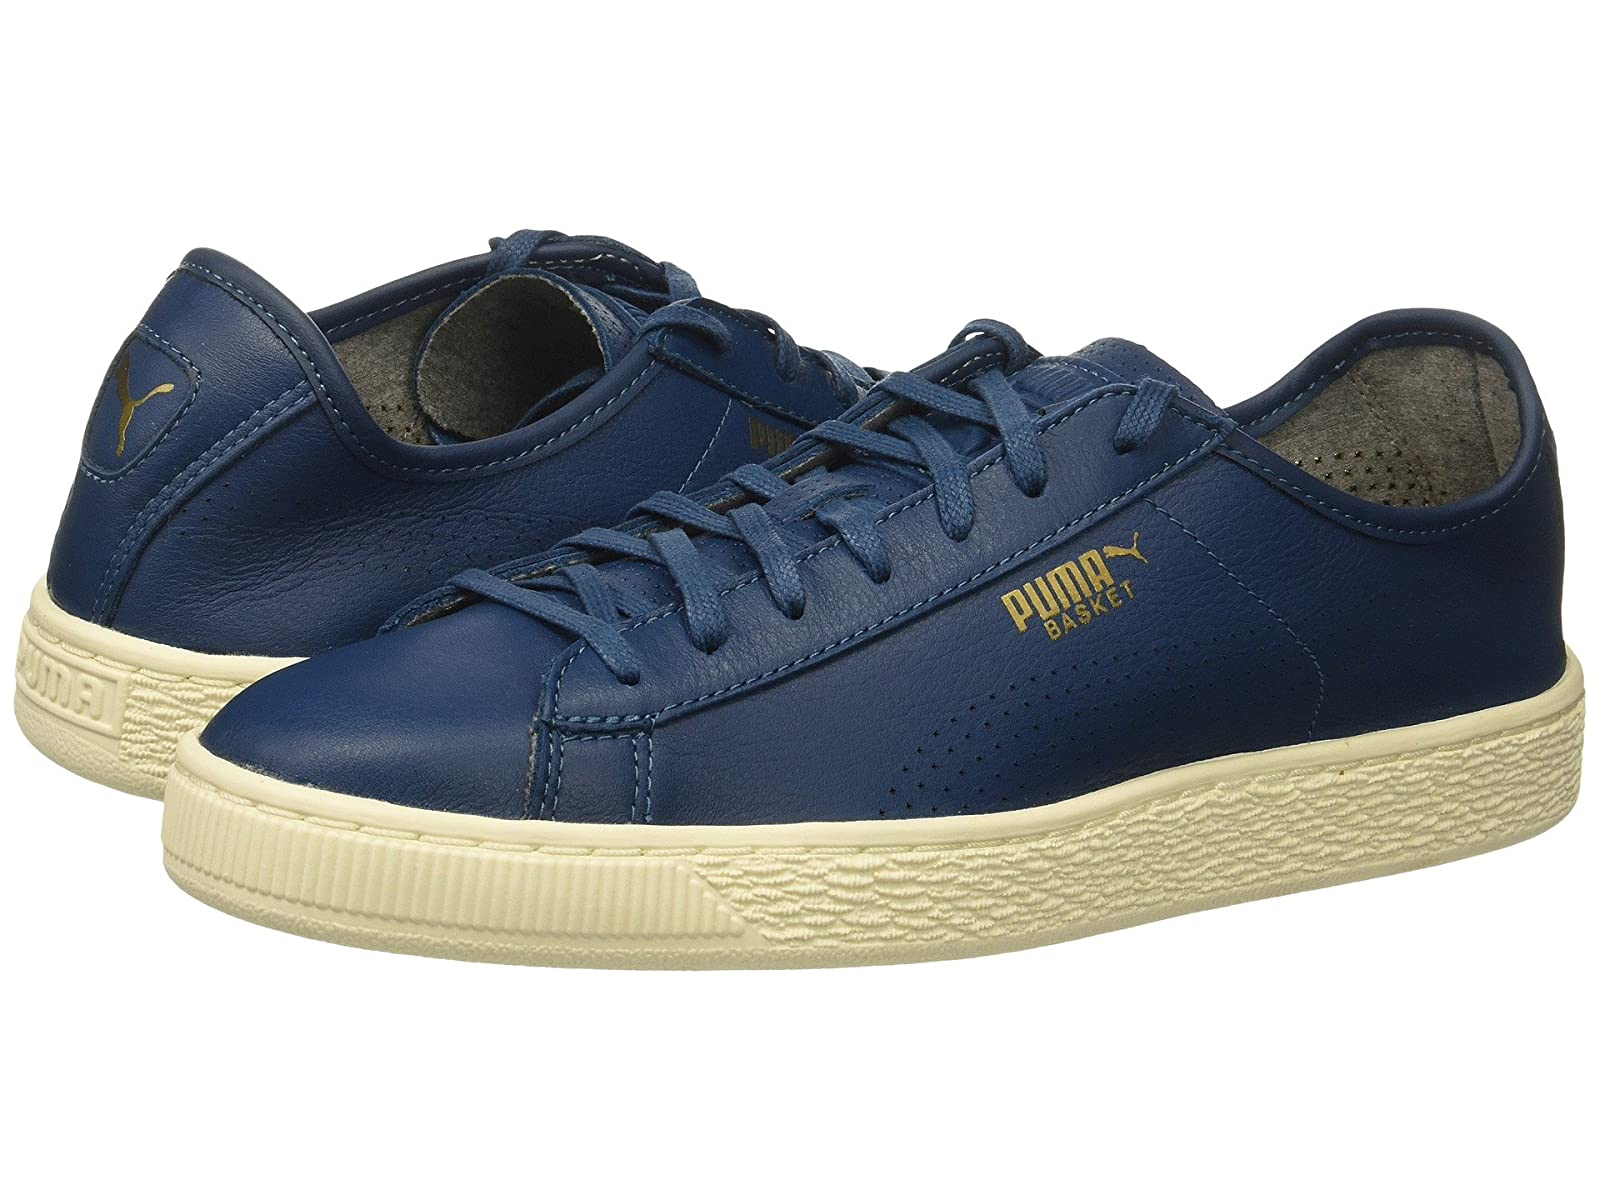 PUMA Basket Classic SoftCheap and distinctive eye-catching shoes